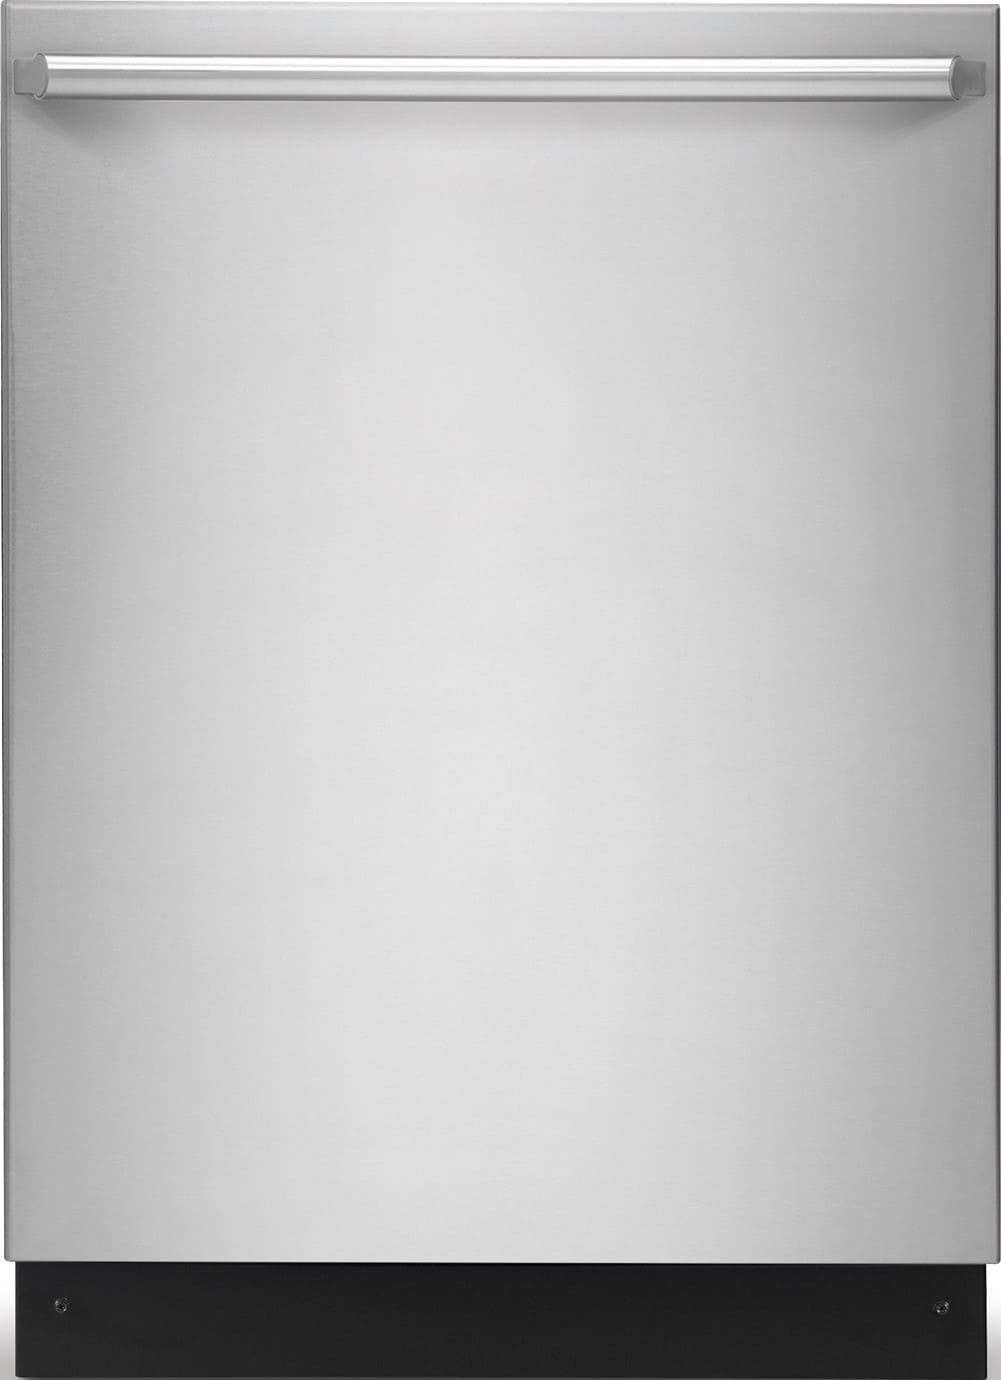 electrolux ei24id30qs fully integrated dishwasher with 14 place setting capacity proclean system for 4x more coverage 30 min fast wash